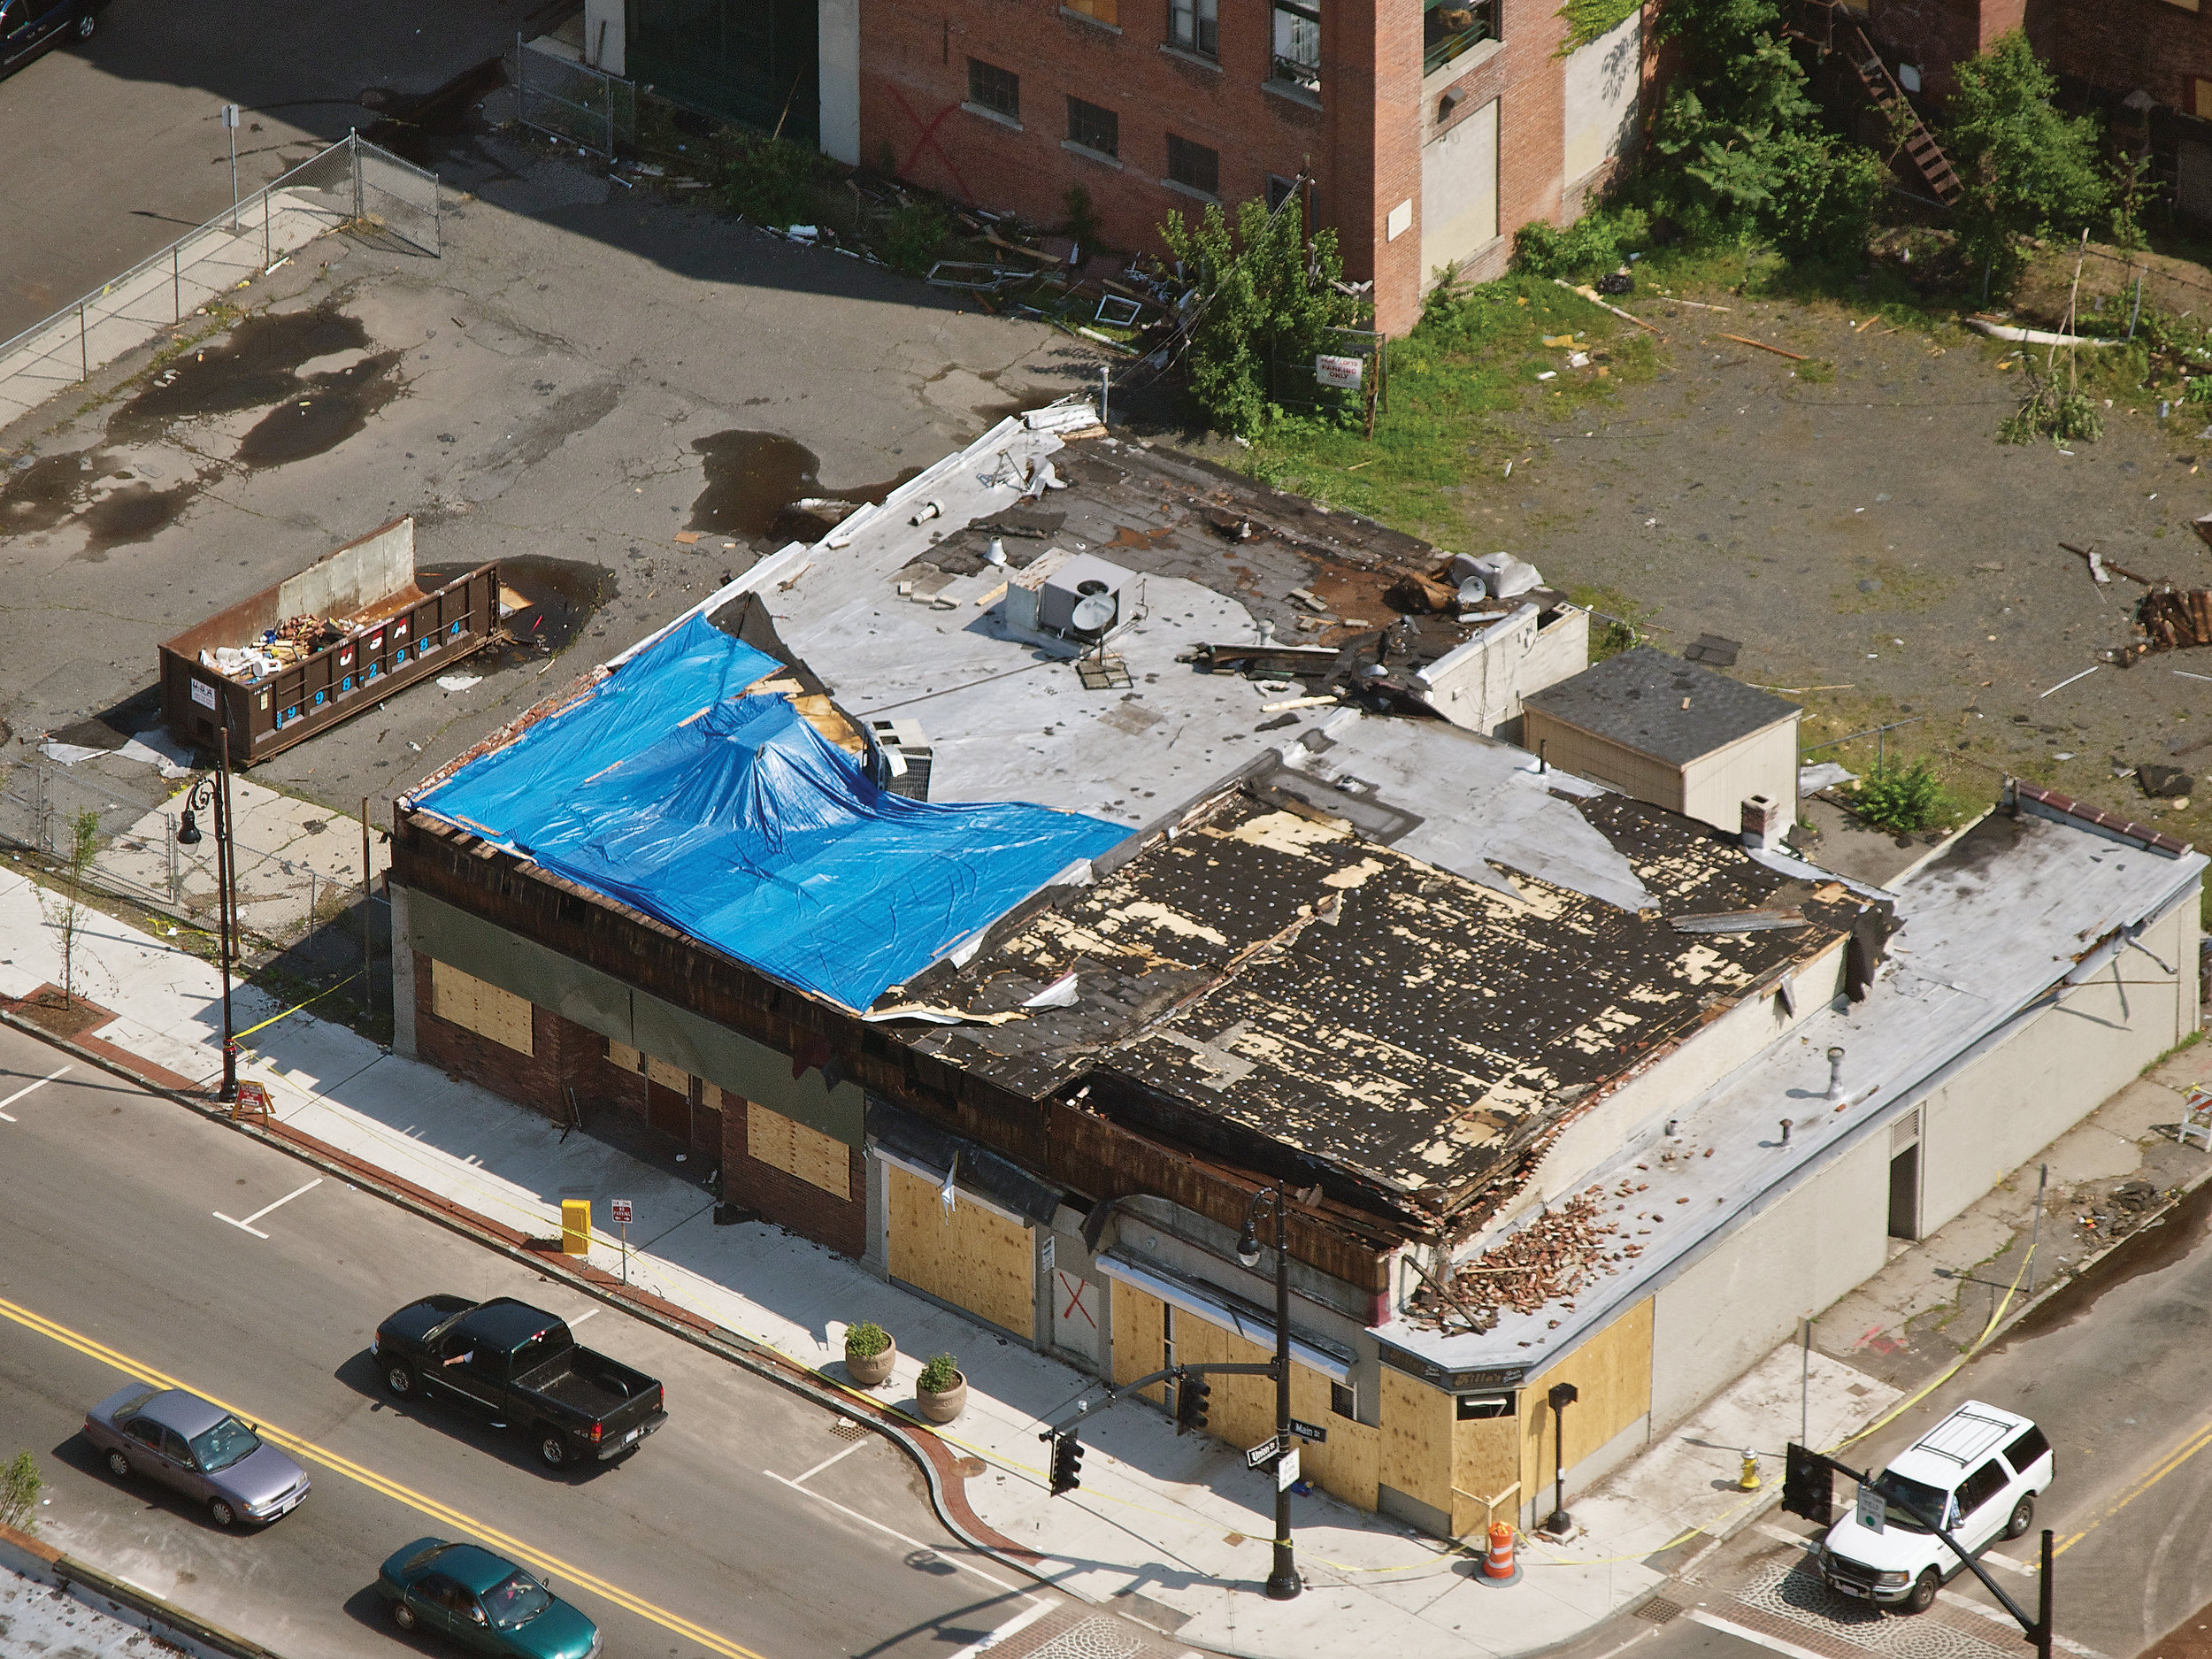 A Tornado Damaged This Commercial Building in Springfield, MAssachusetts.